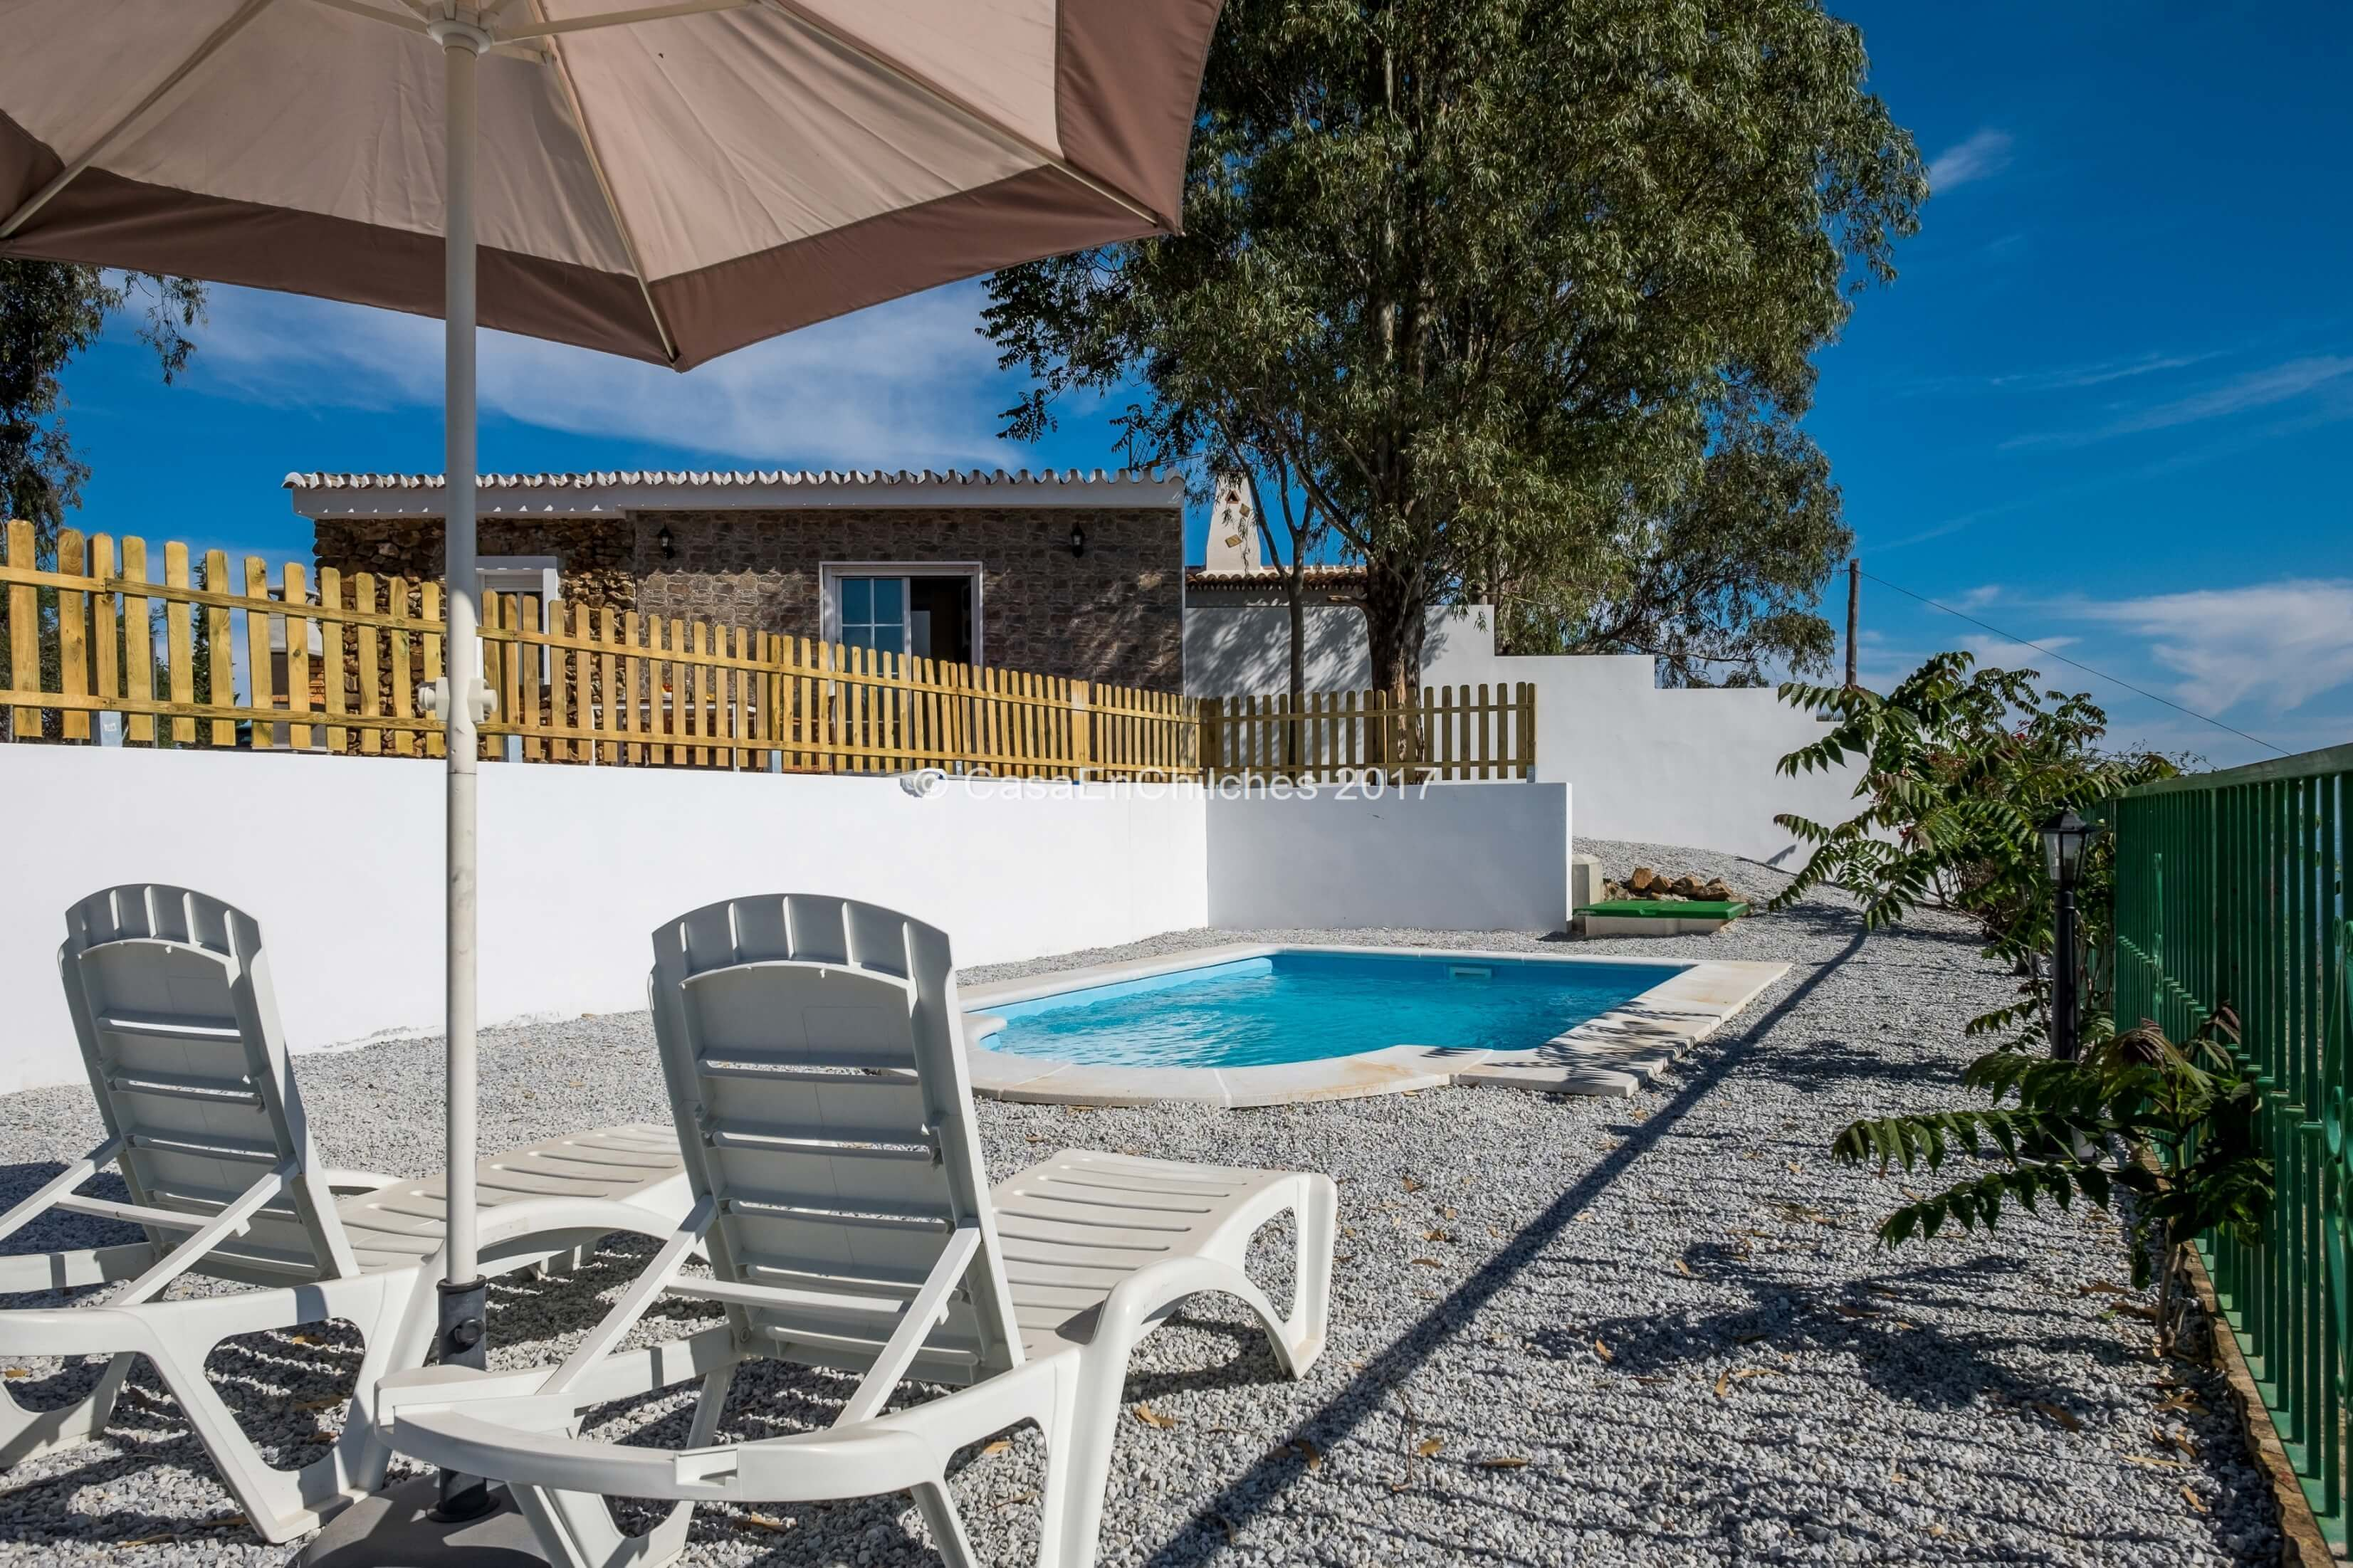 Casa Ronda, piscina privada - CasaEnChilches.com